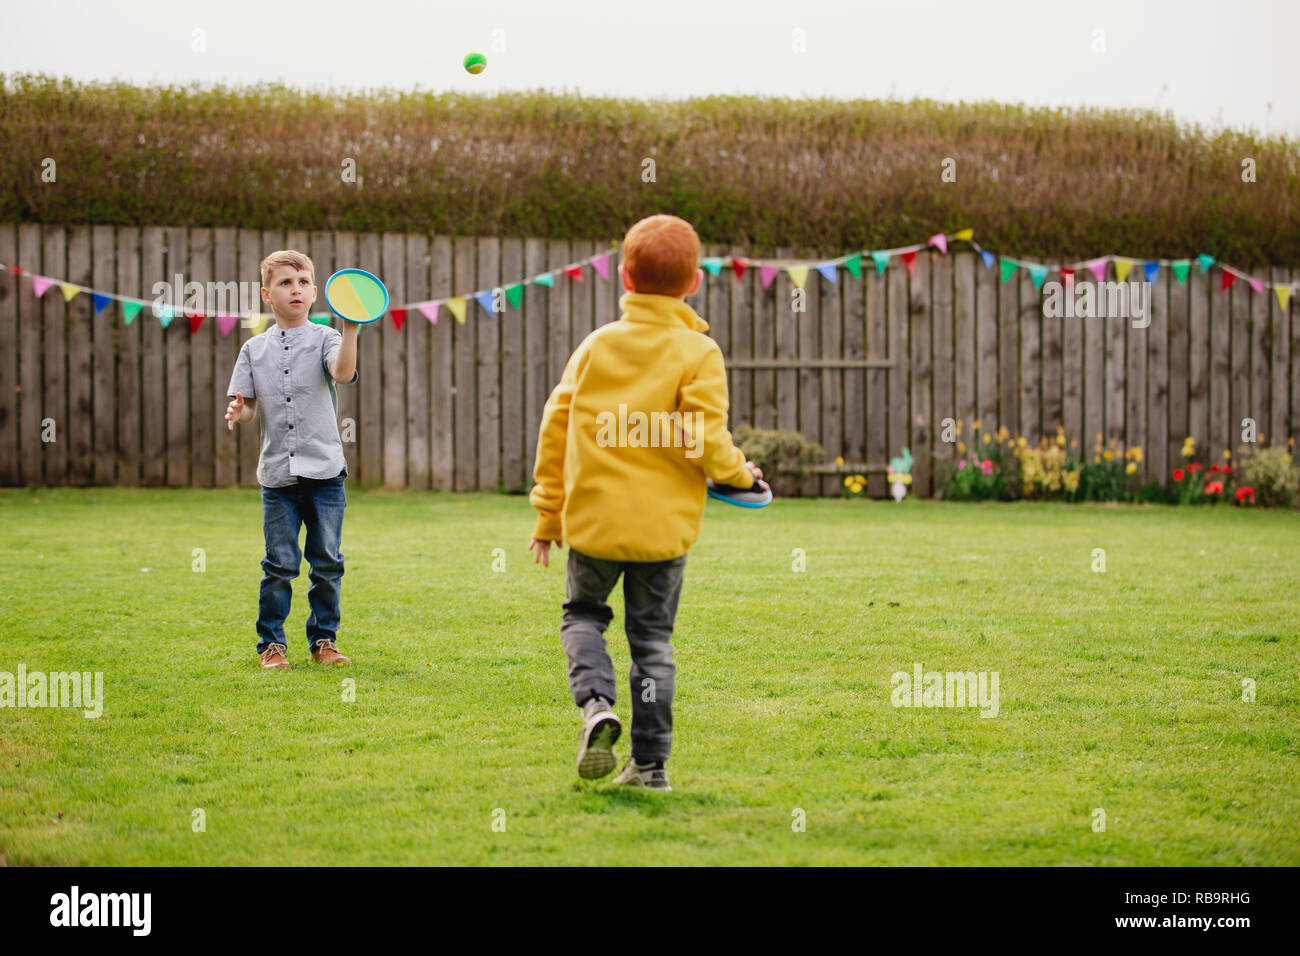 Two young boys playing outside in a back garden. They are throwing a tennis ball to each other and catching it with a velcro mitt. - Stock Image